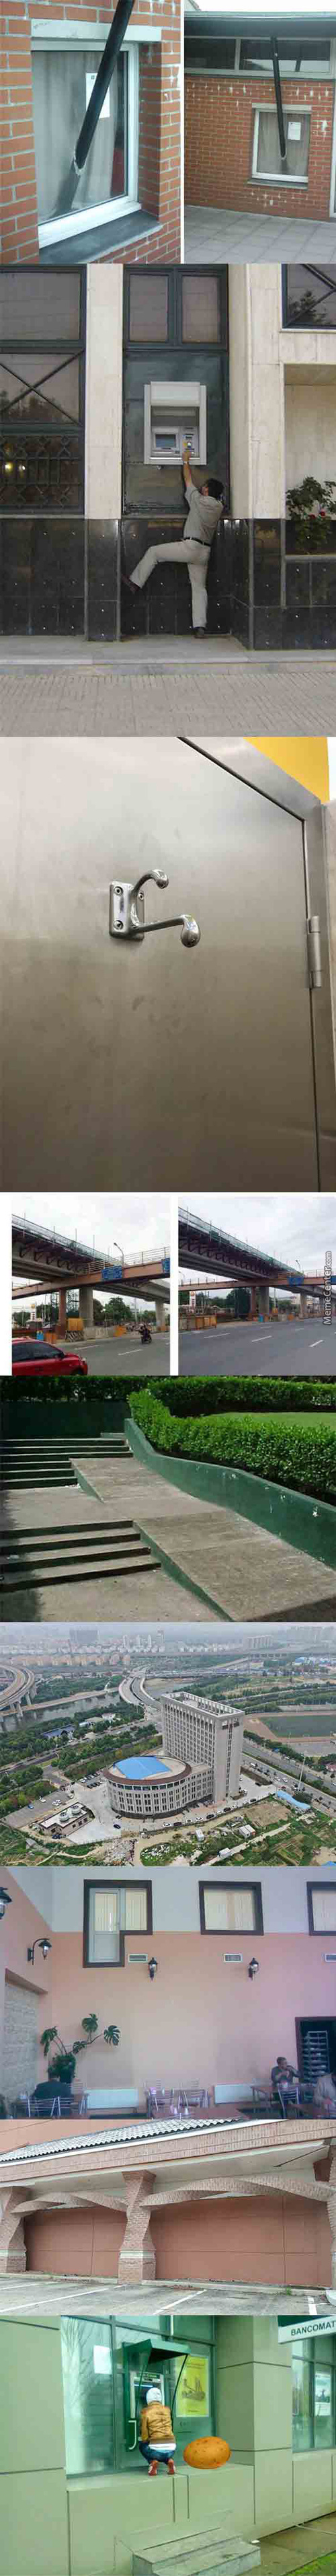 Funny Architectural Mishaps #2